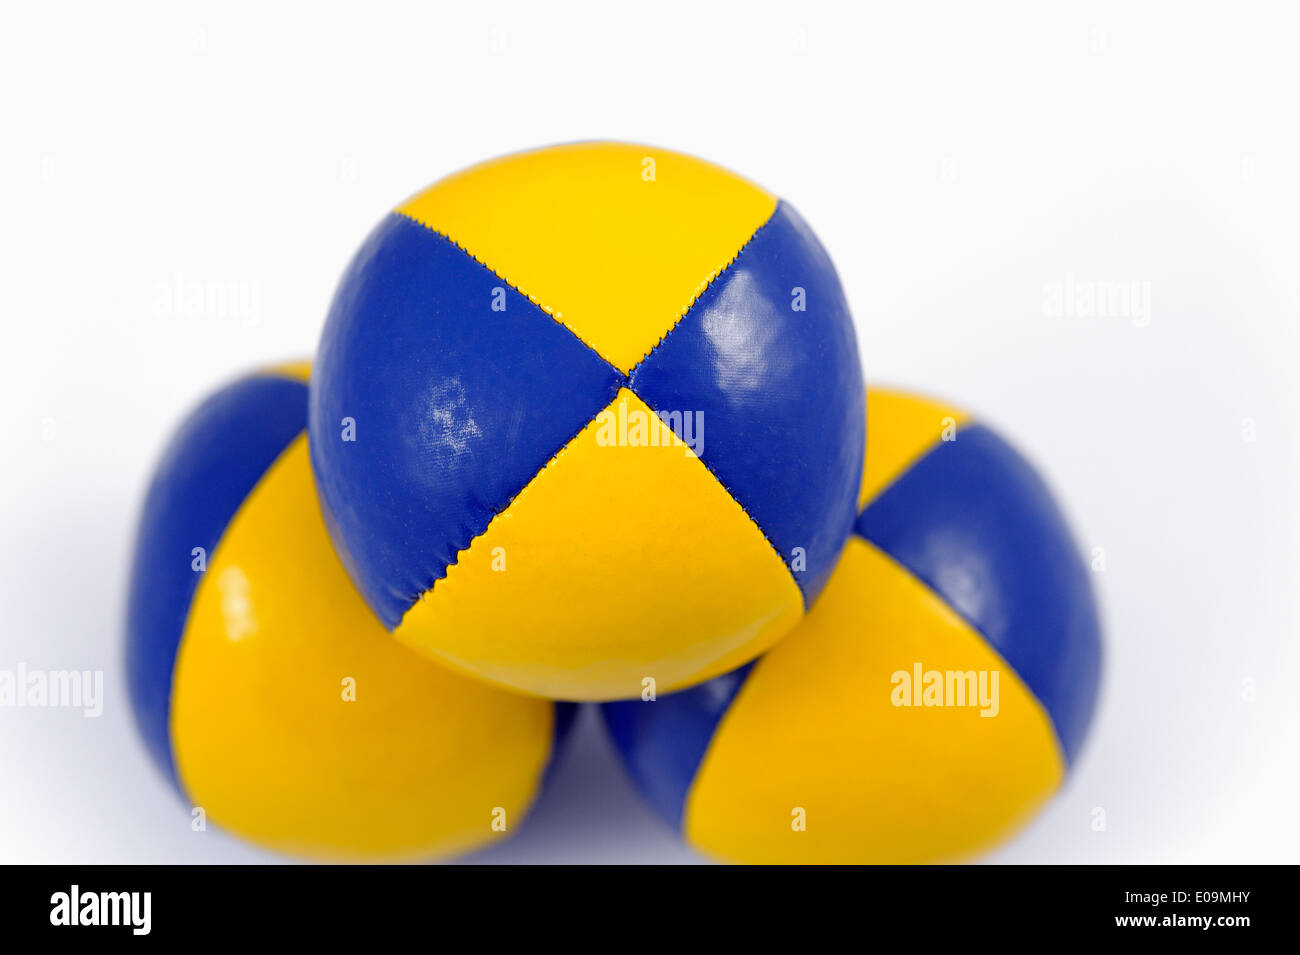 3 Blue and Yellow soft juggling balls - Stock Image